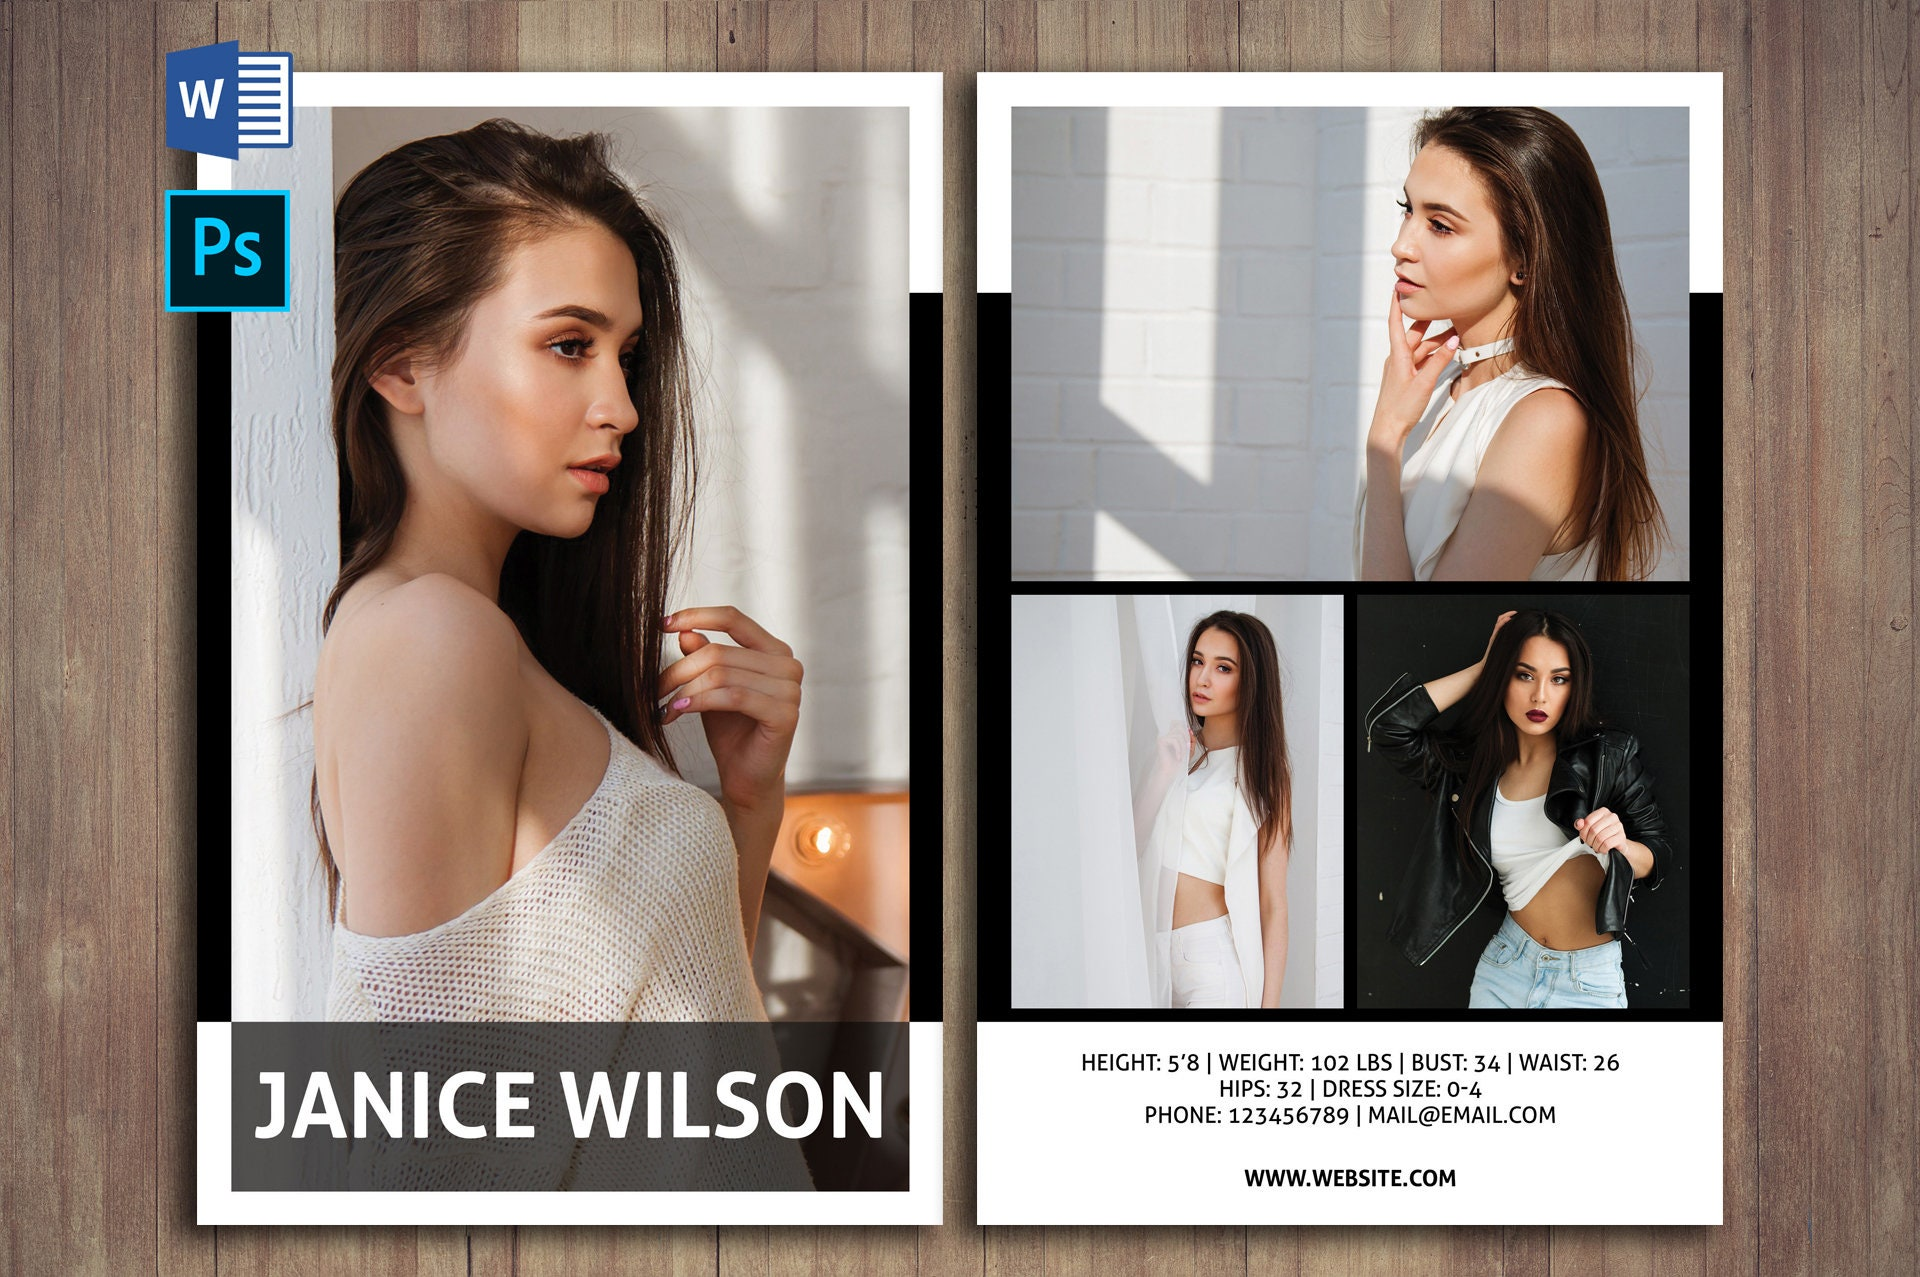 Professional Comp Card PSD Template, Modeling Comp Card Template, Photoshop  Template, Instant Download For Comp Card Template Psd